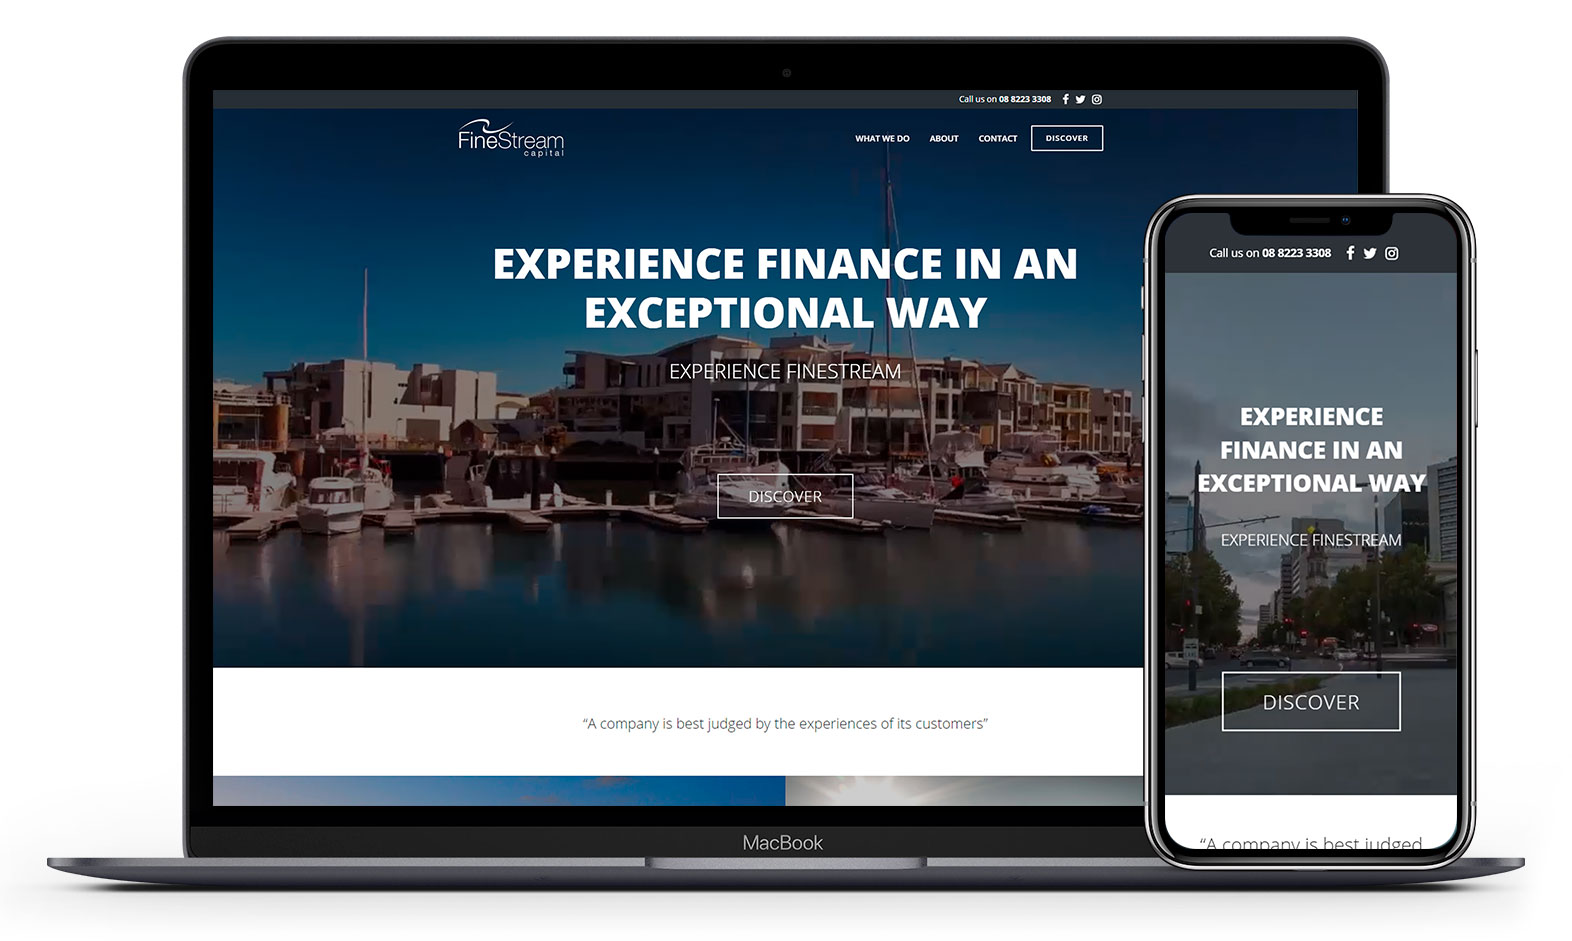 Finestream Capital's website design displayed responsive devices